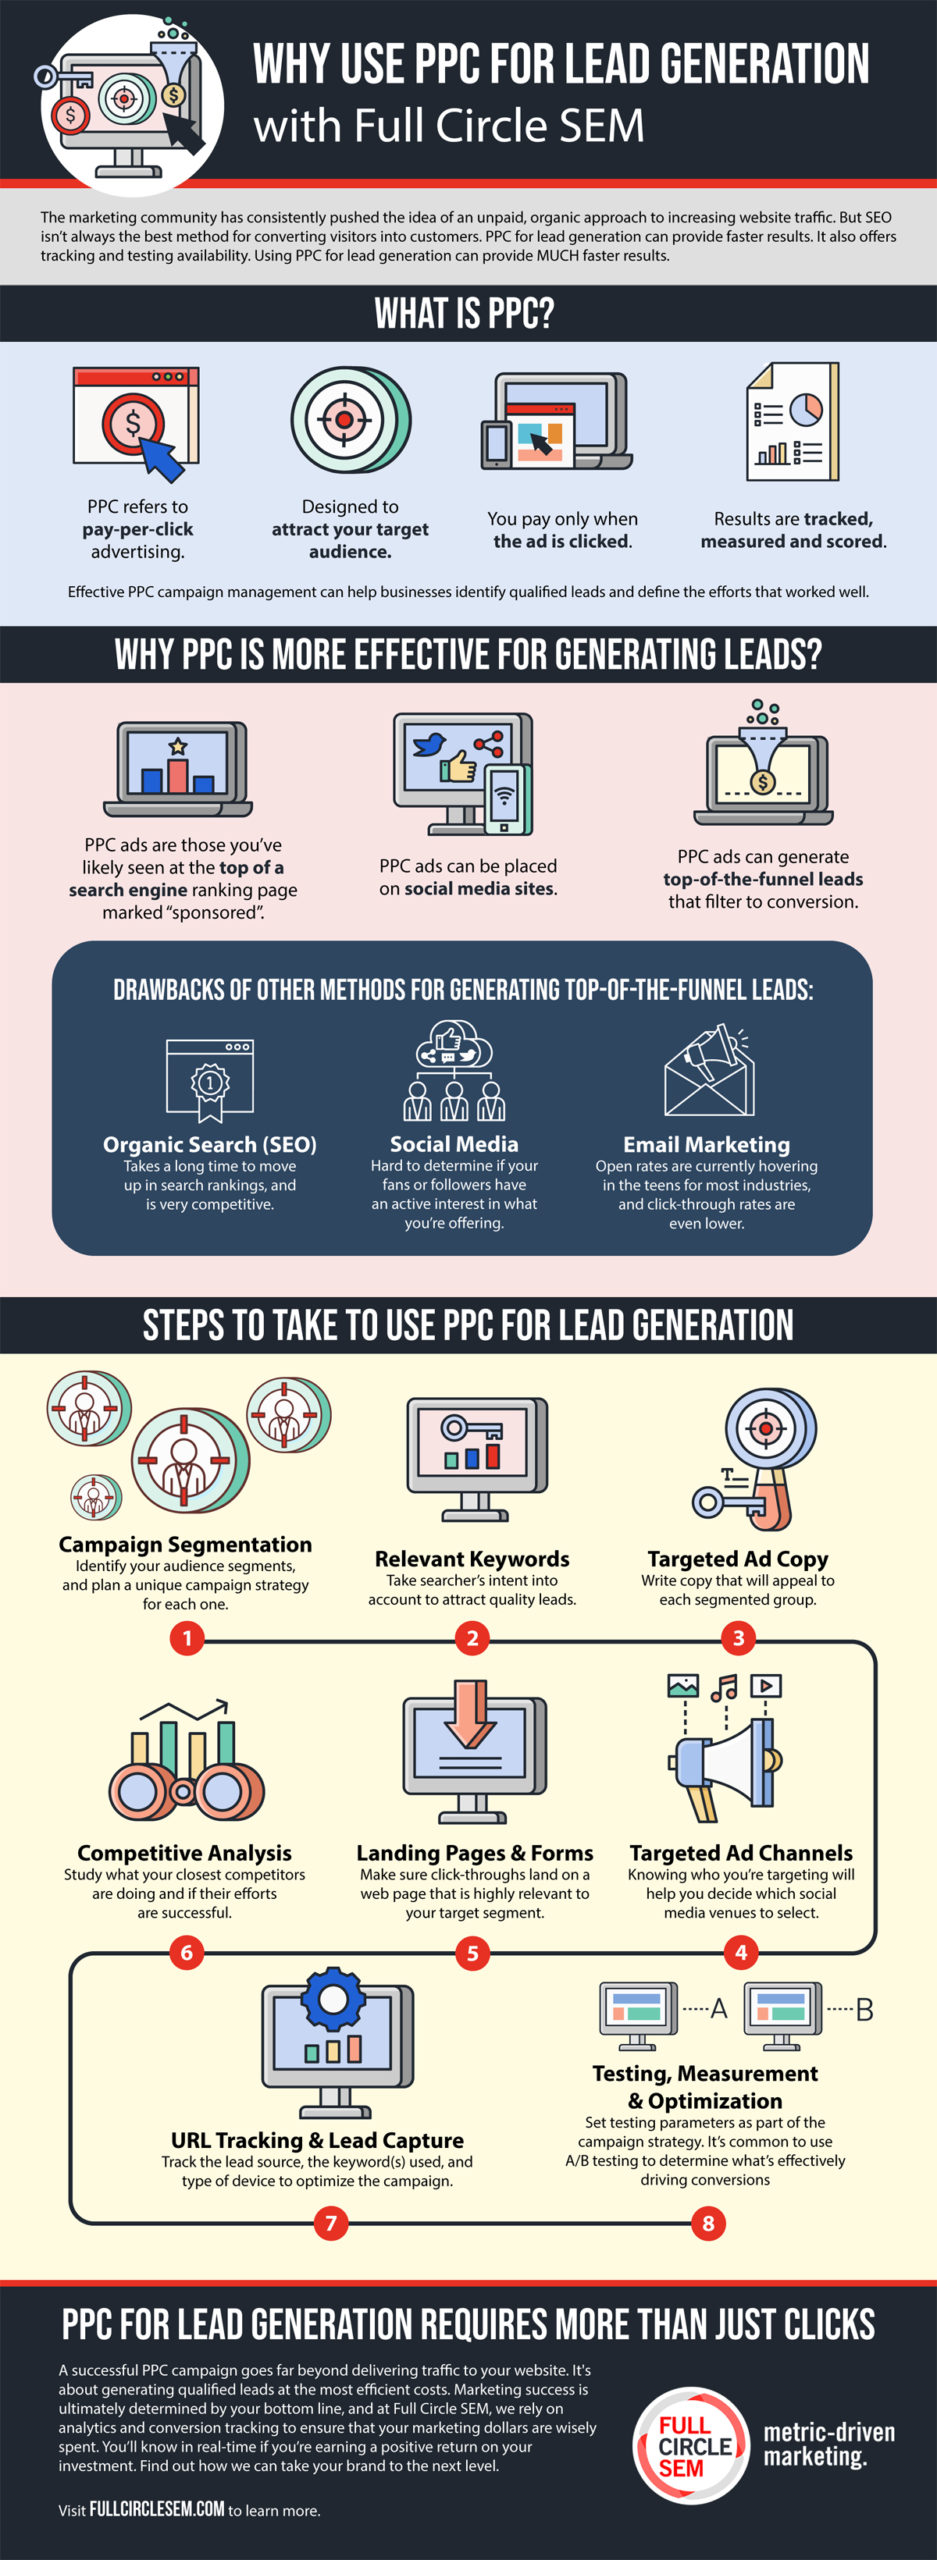 Why Use PPC for Lead Generation with Full Circle SEM